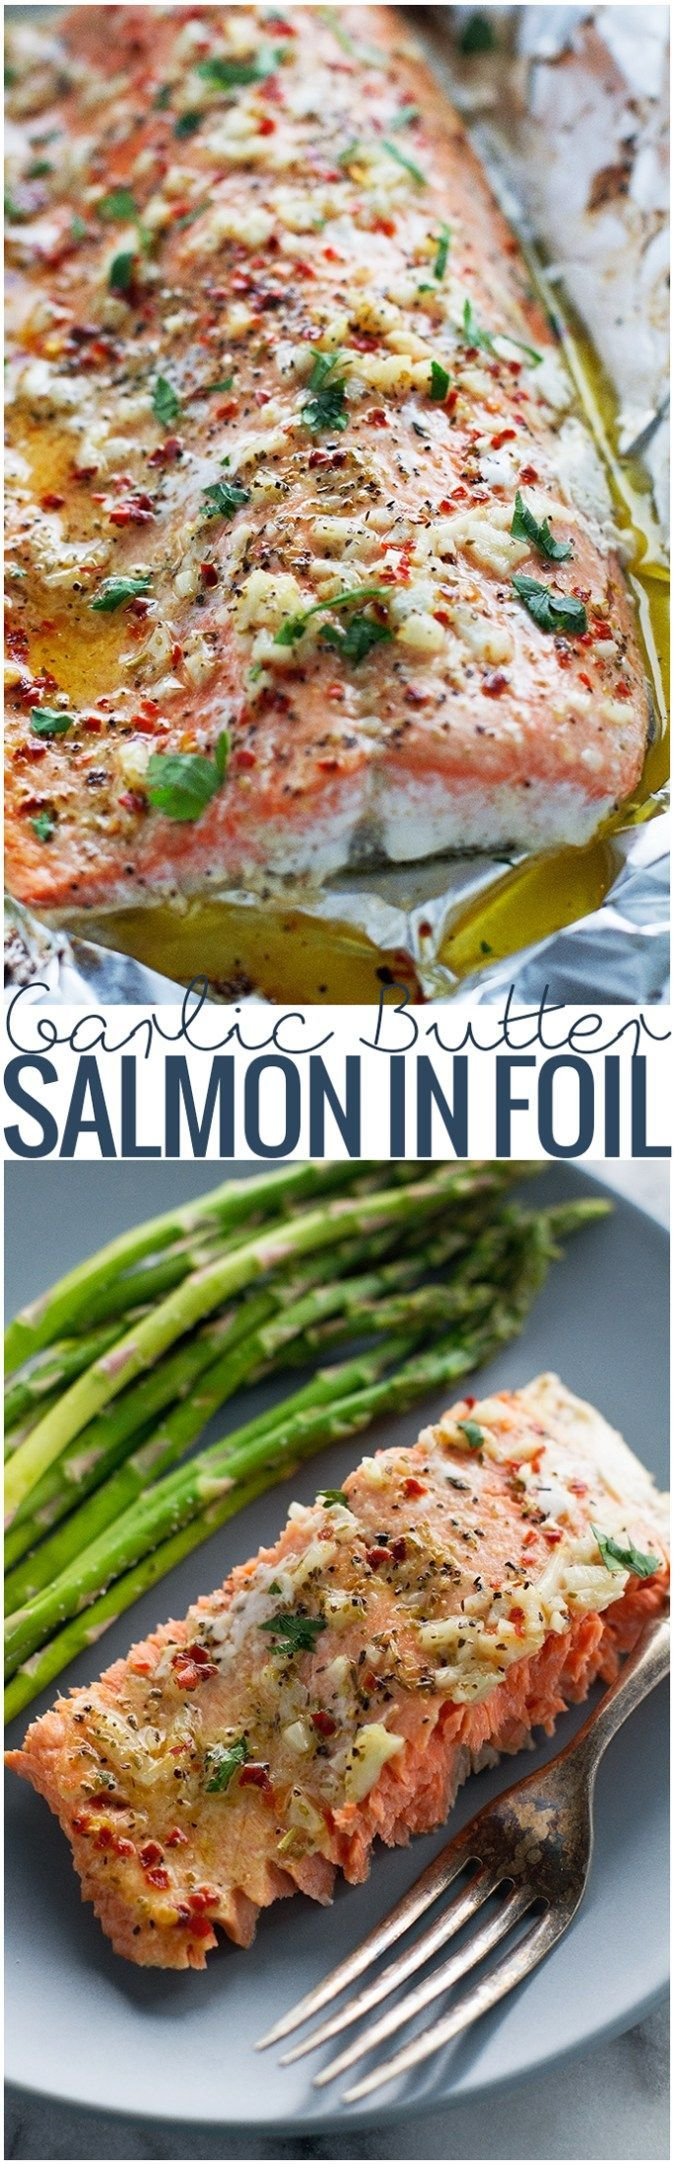 Lemon Garlic Butter Baked Salmon in Foil - This recipe takes less than 30 minutes and is perfect for weeknight dinners! #bakedsalmon #salmoninfoil #30minutemeals #bakedfish | http://Littlespicejar.com